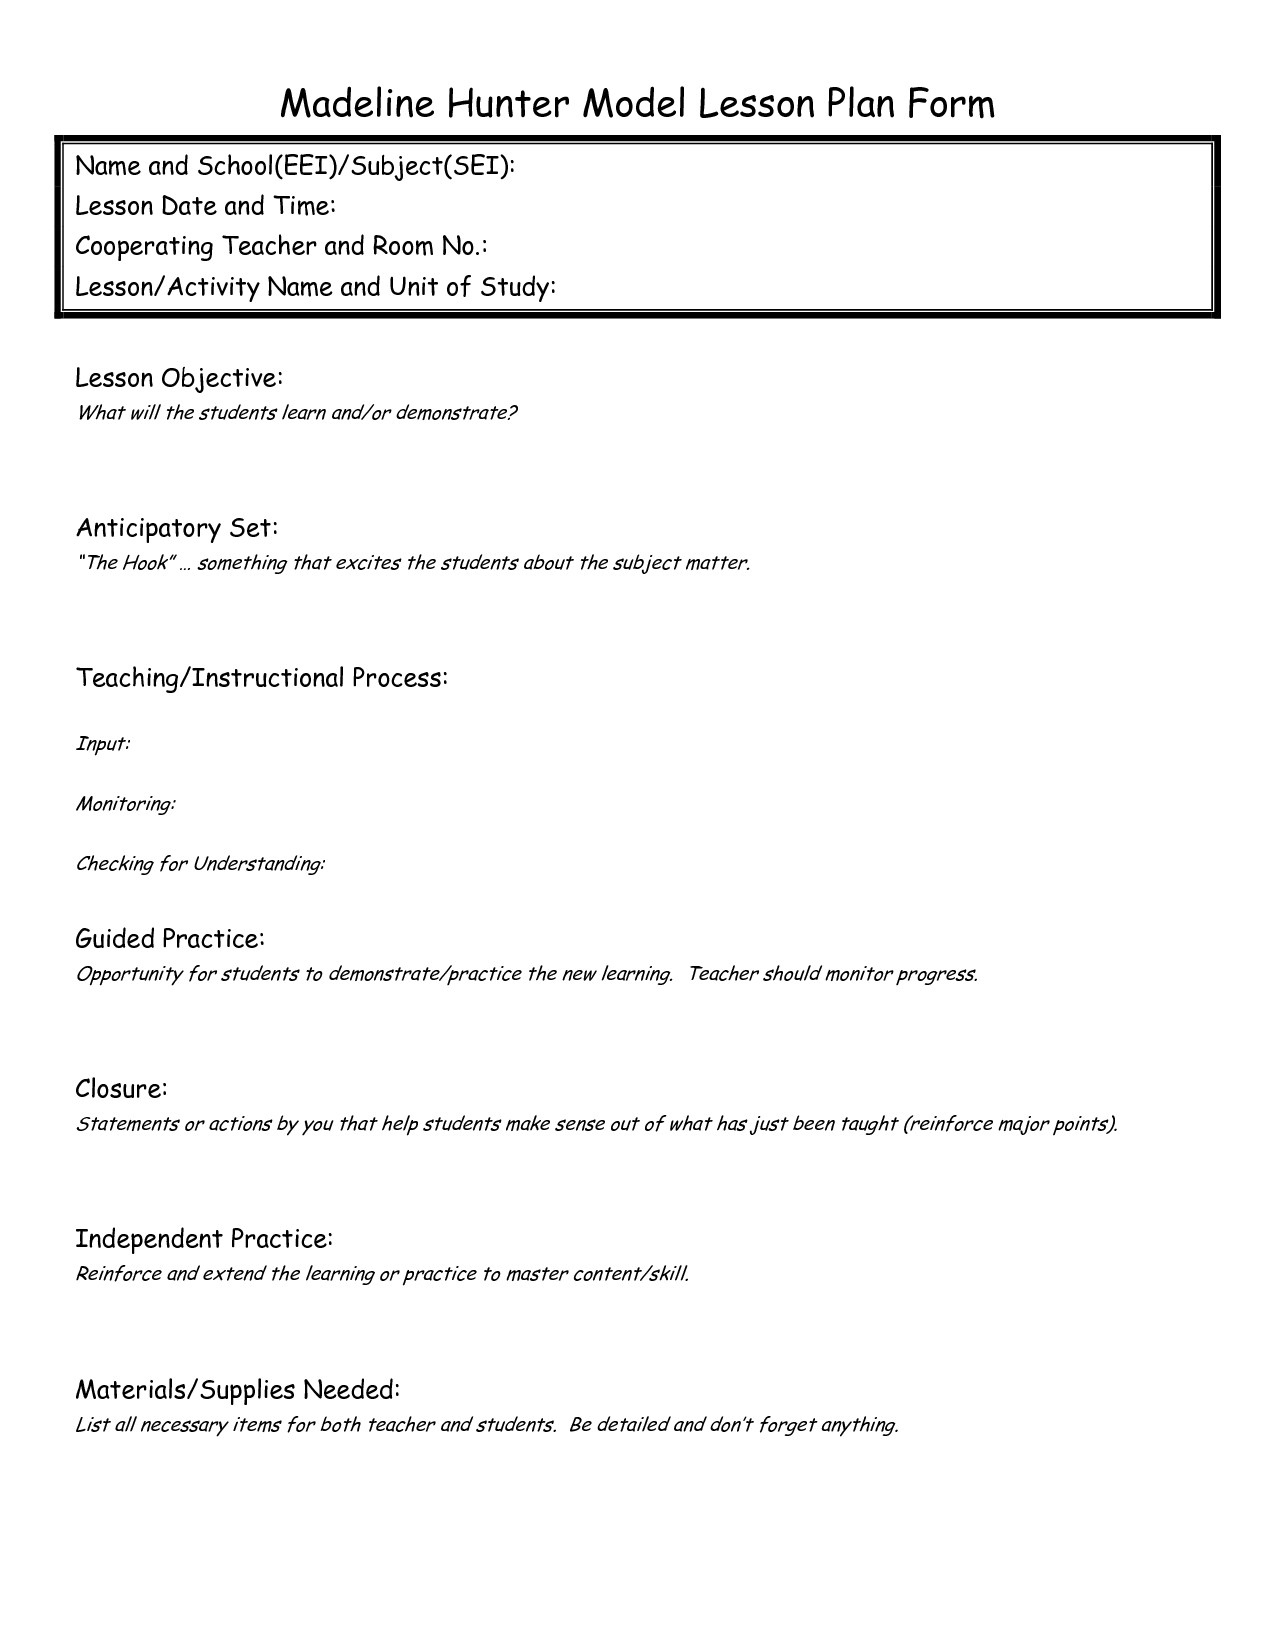 Blank Madeline Hunter Lesson Plan Template